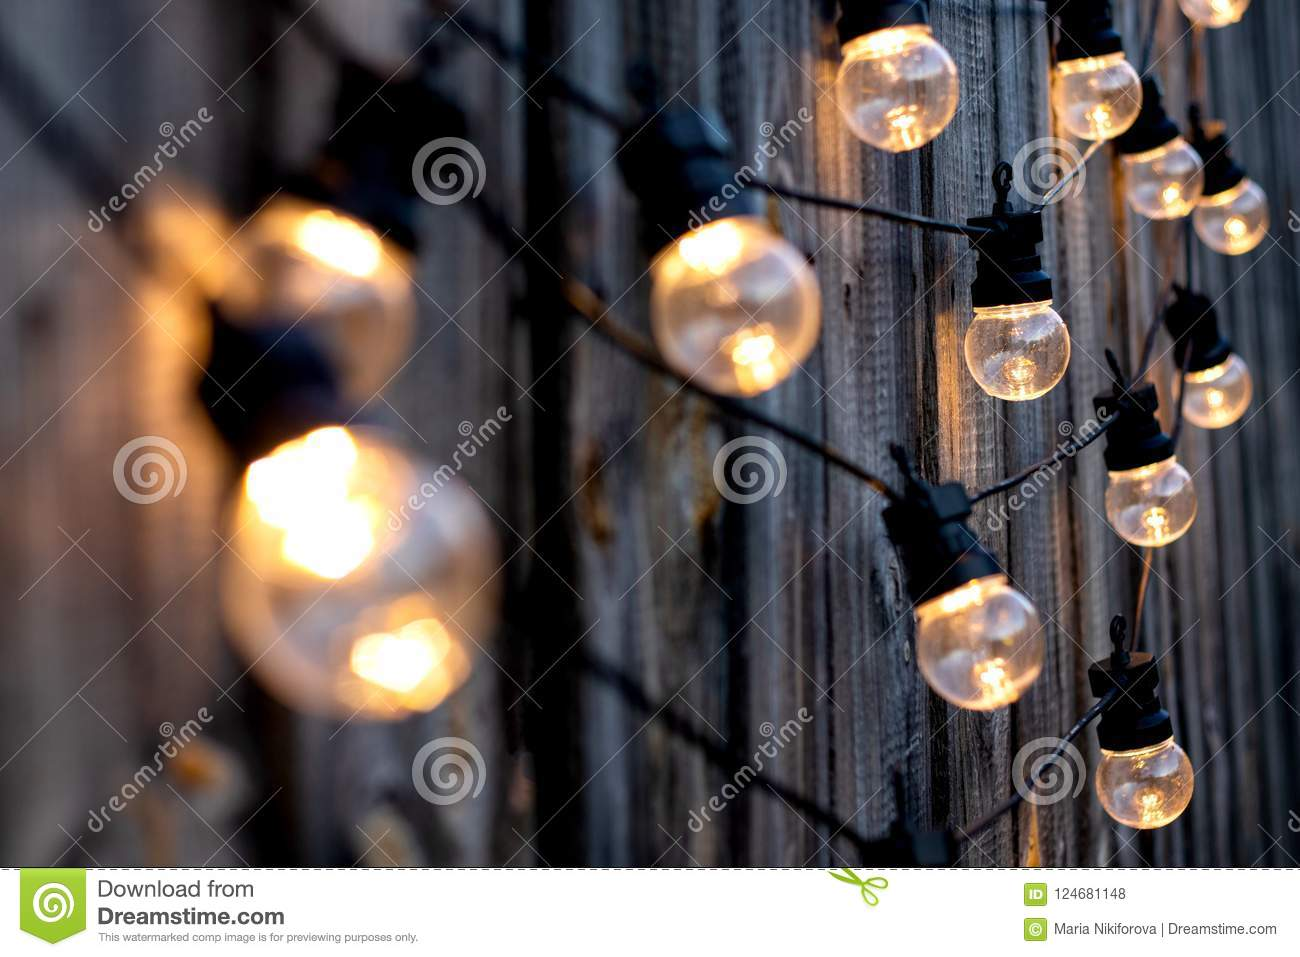 Warm color LED light bulbs on old wooden background in the garden, copyspace, outdoor lighting deciration concept